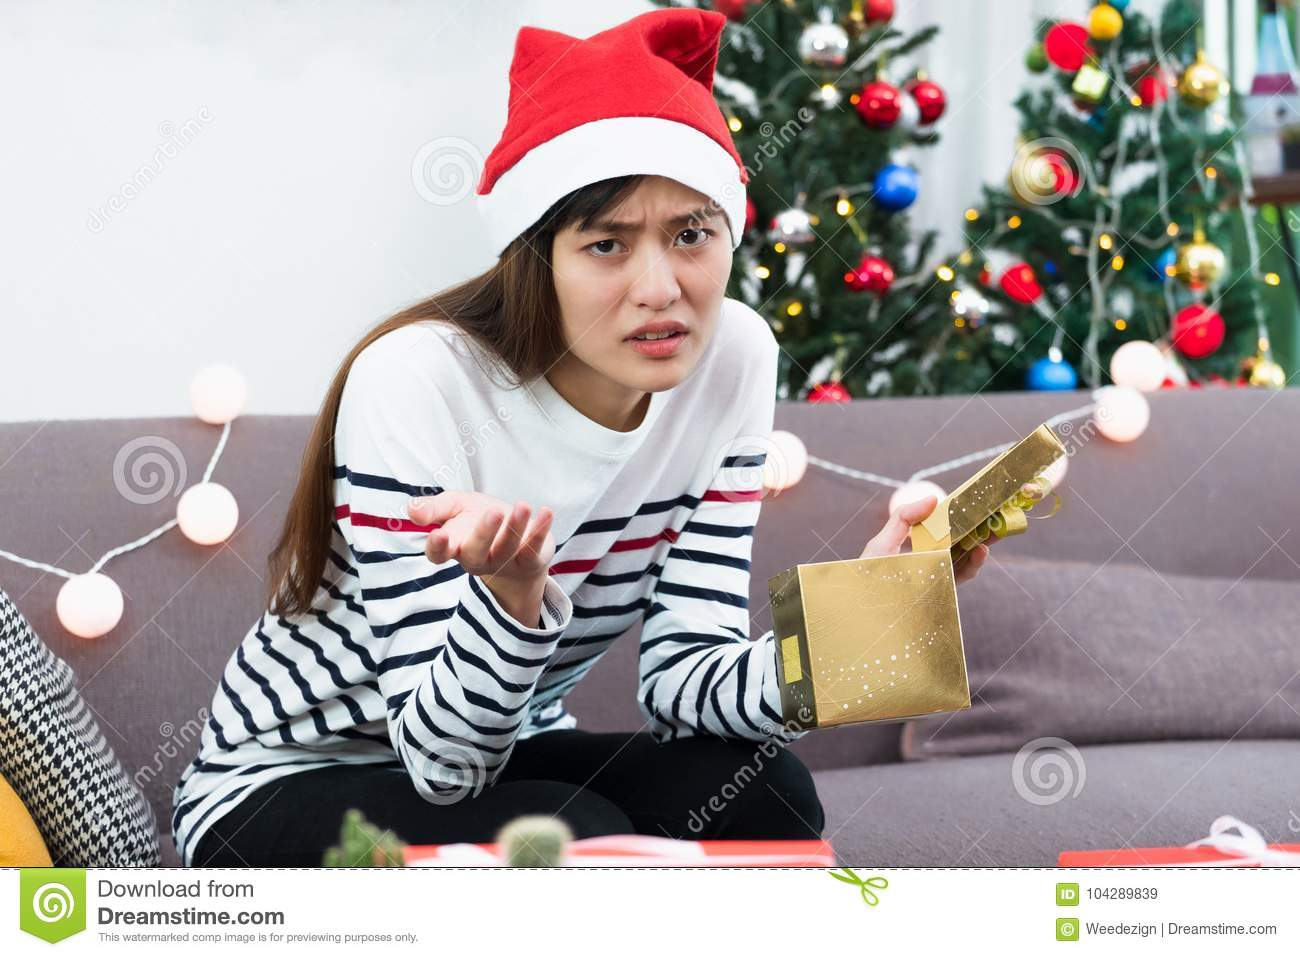 asian woman upset when open gold xmas gift box at holiday party on sofaboredom christmas party present - When Do You Open Christmas Presents